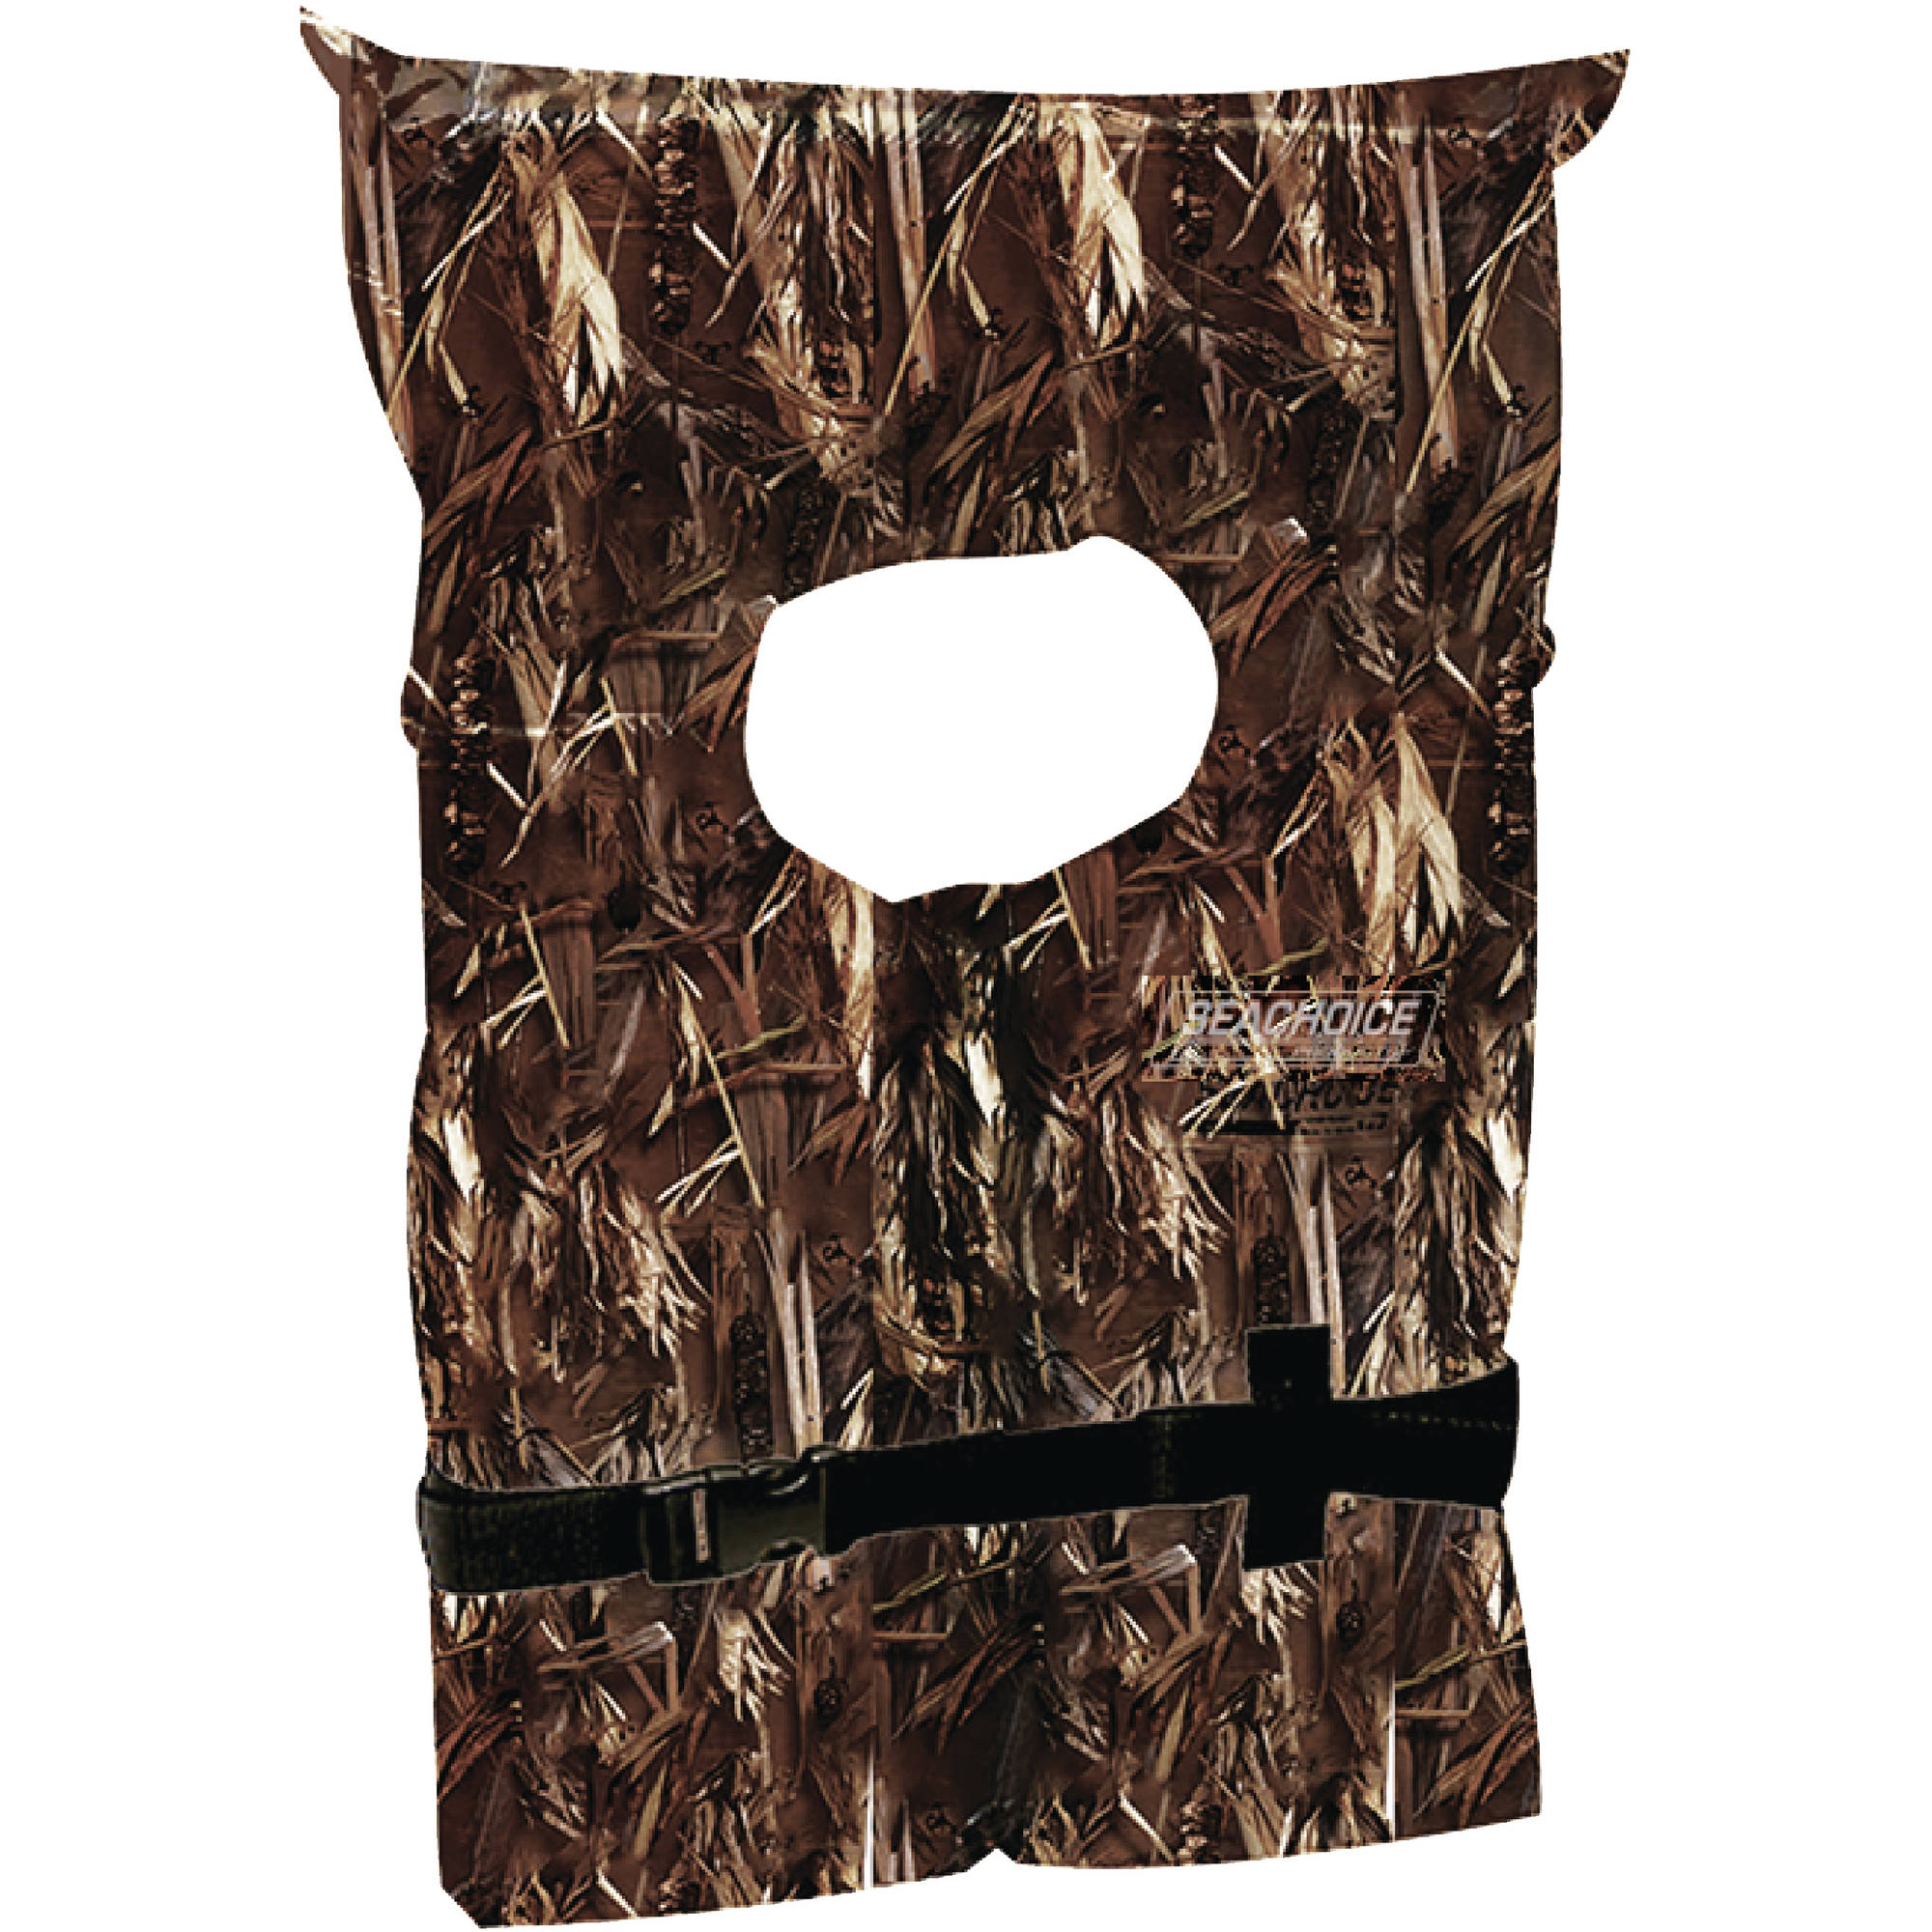 Seachoice Universal Type II Life Vest, Camouflage by Seachoice Products